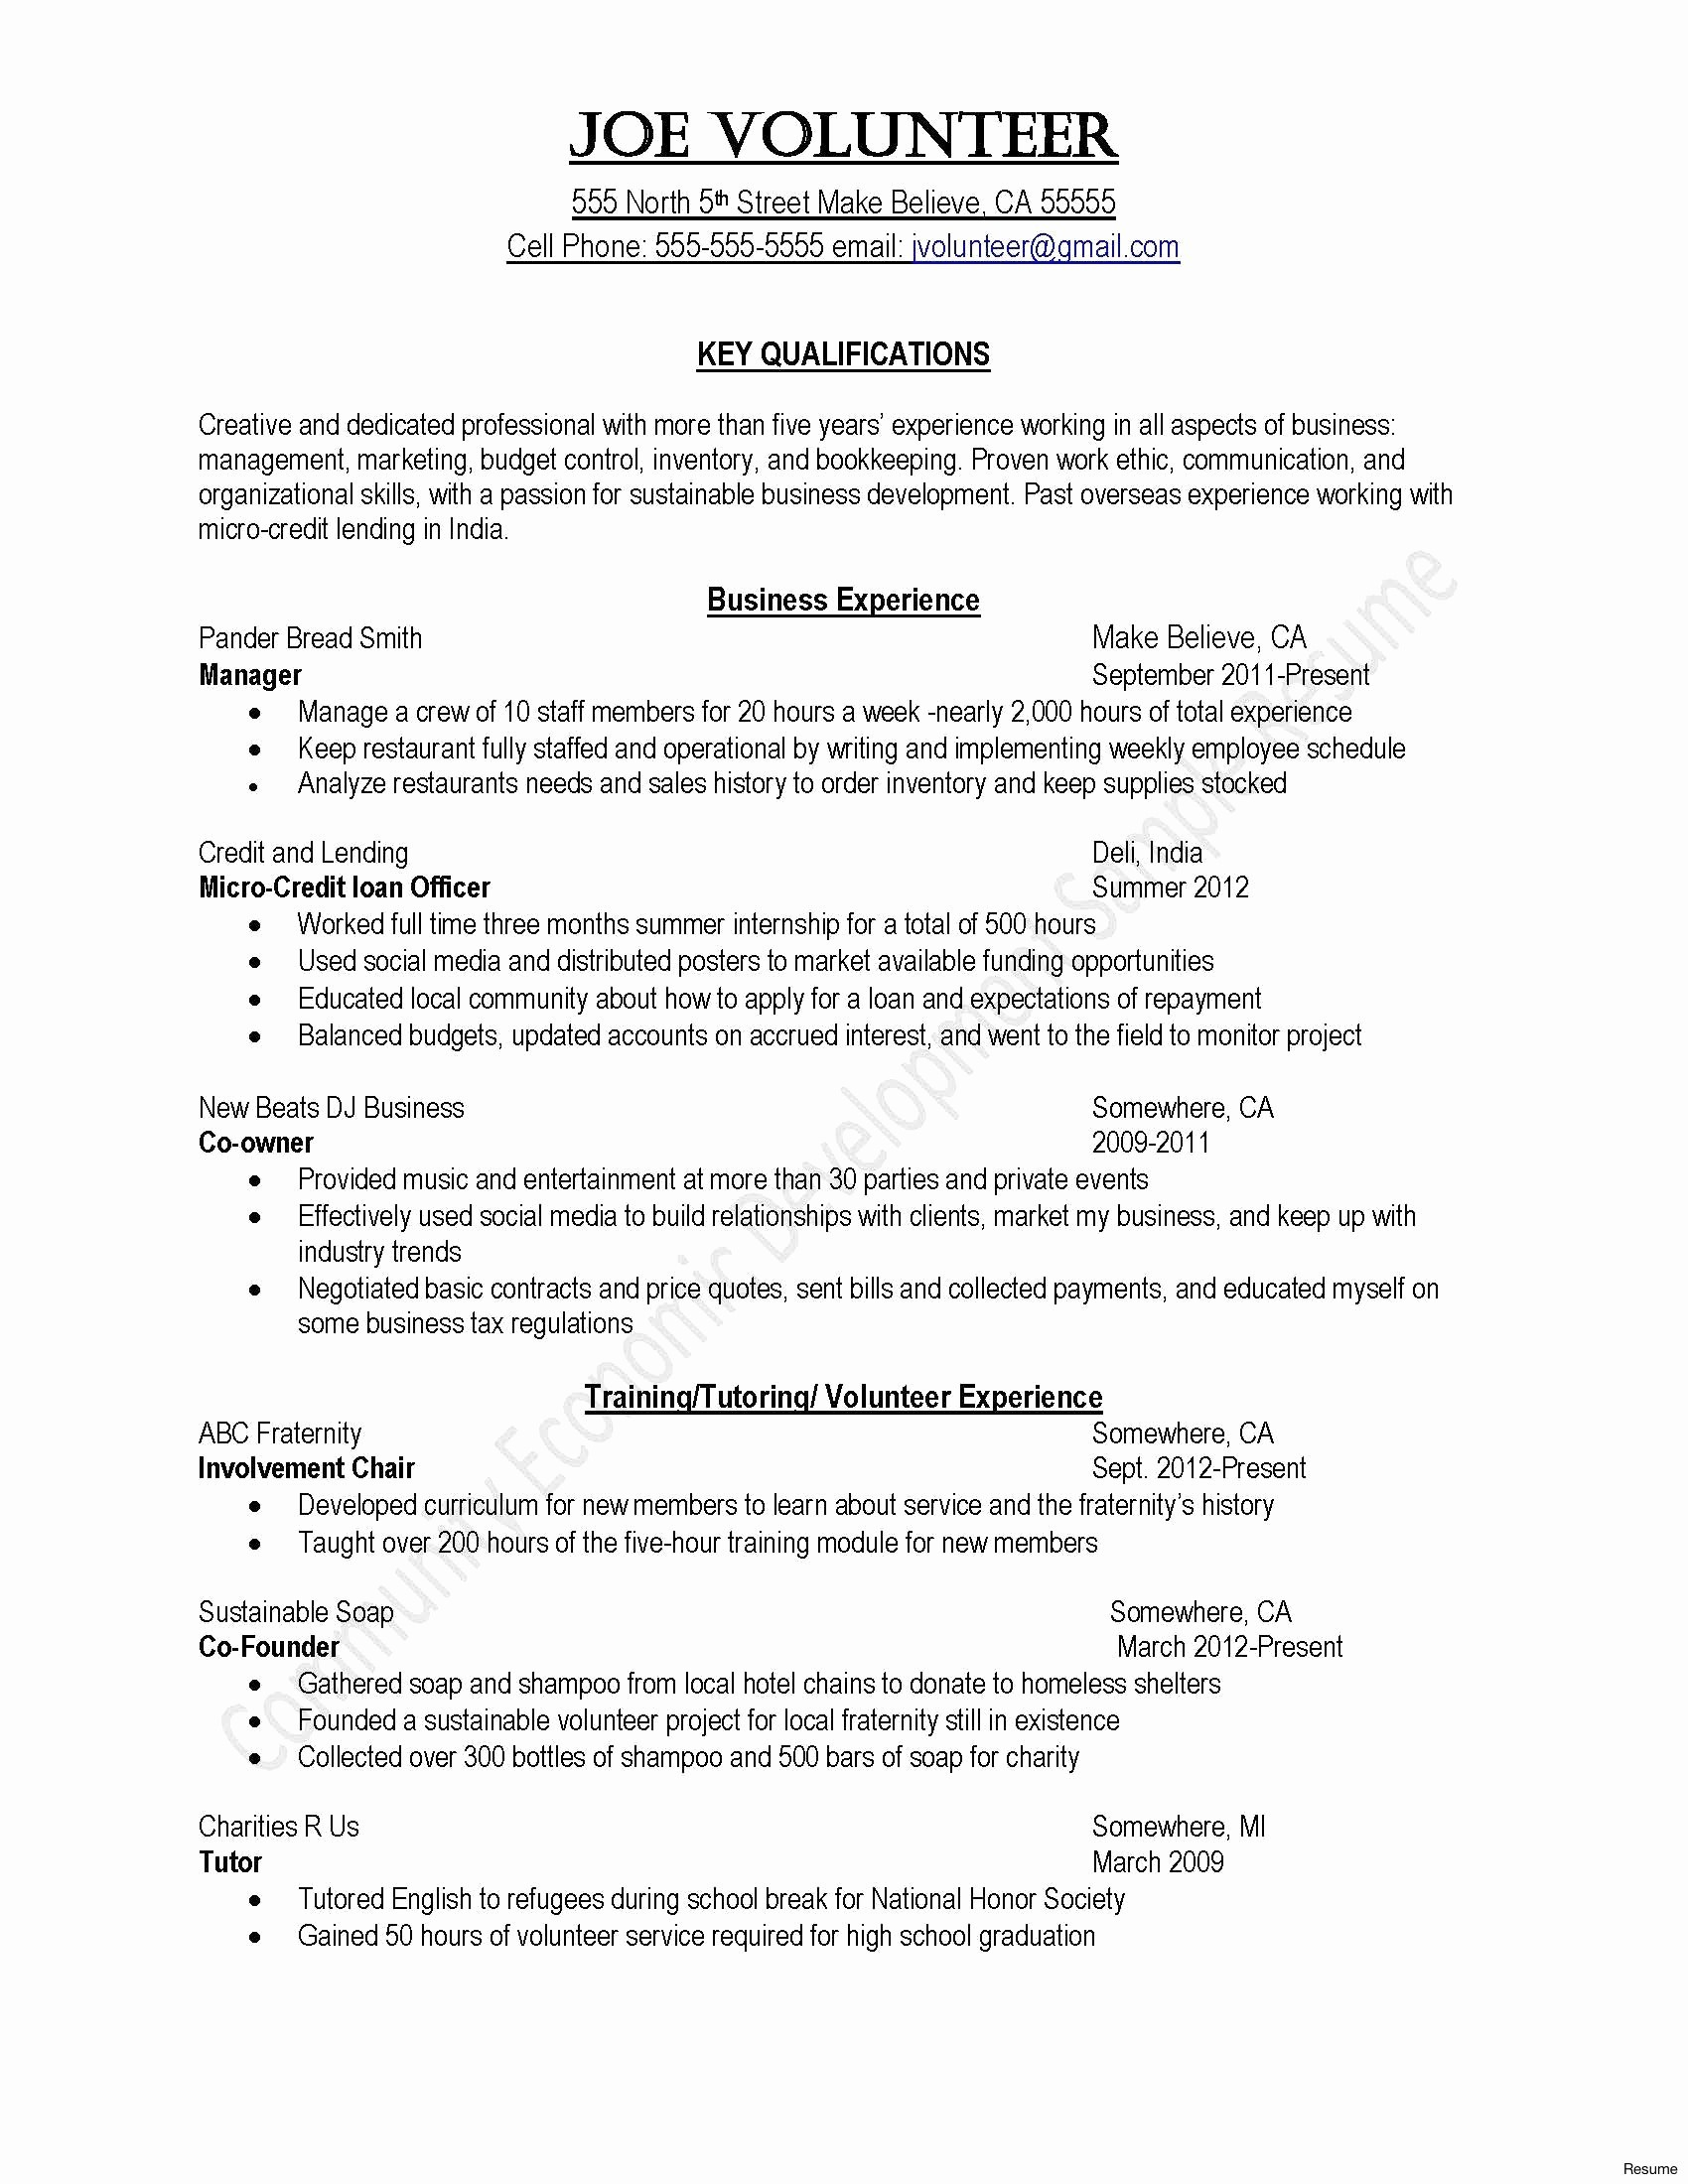 Traditional Cover Letter Template - Good Way to Start A Cover Letter